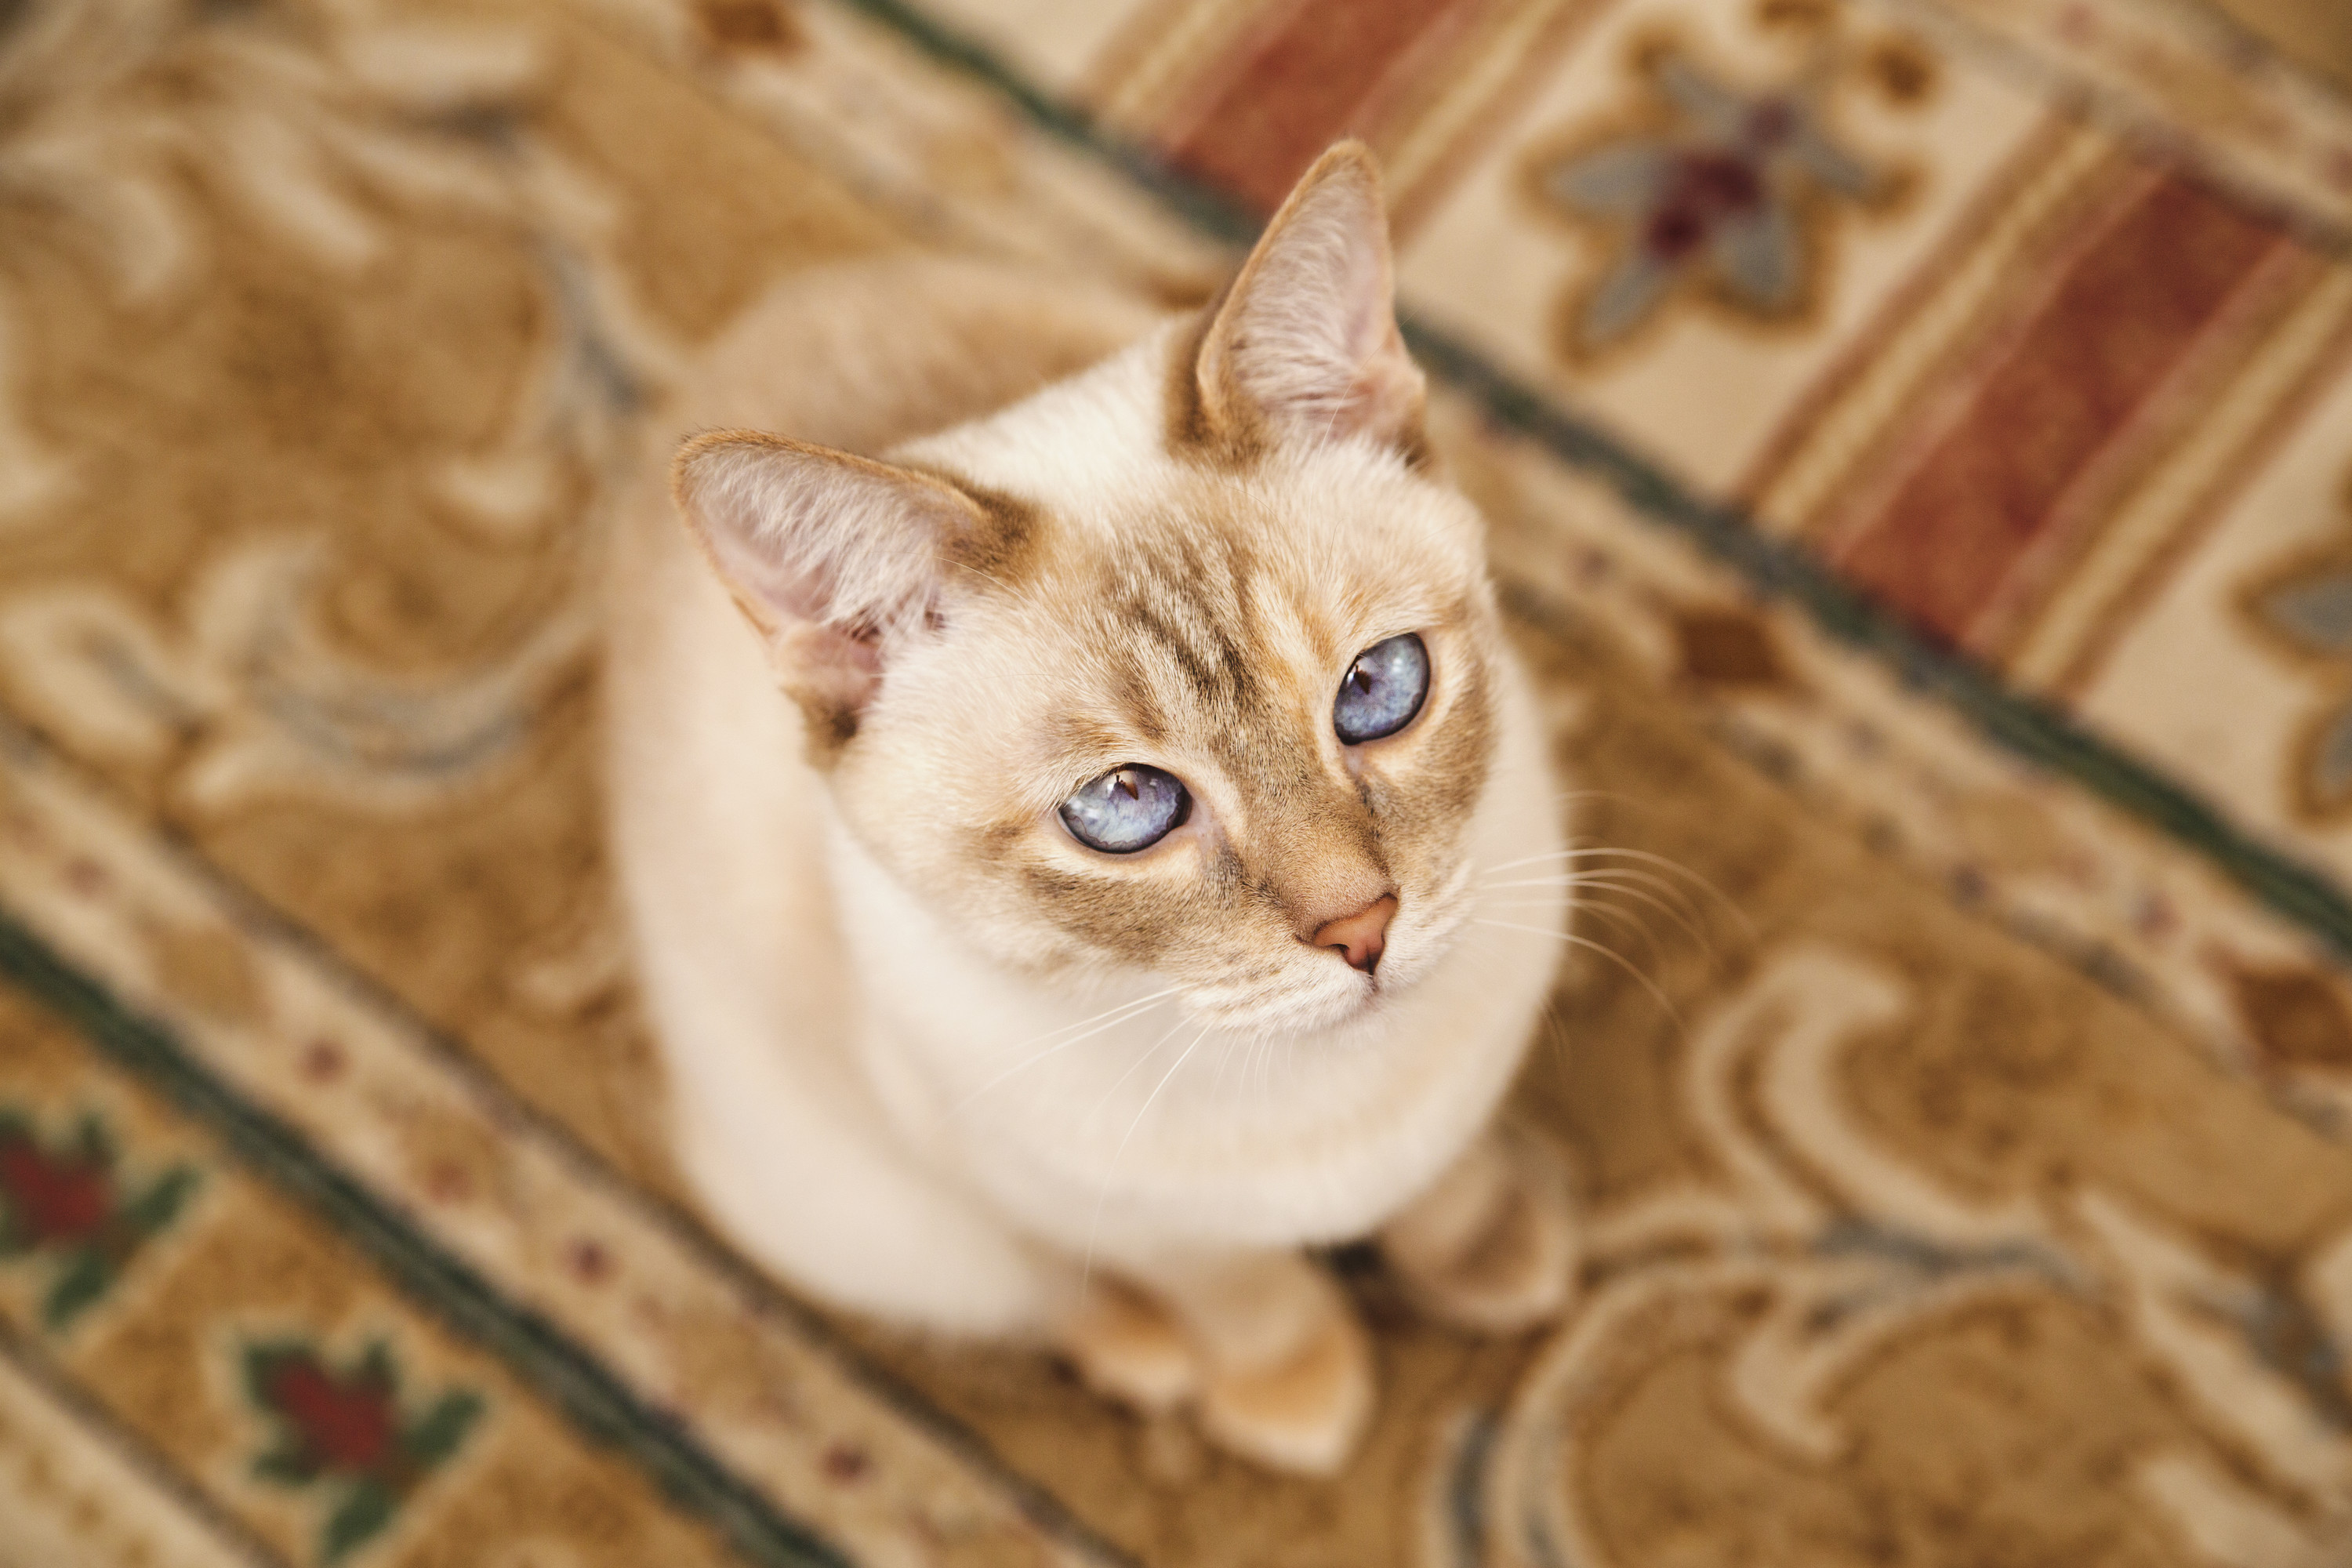 Cat sitting on a carpet in Concord, CA